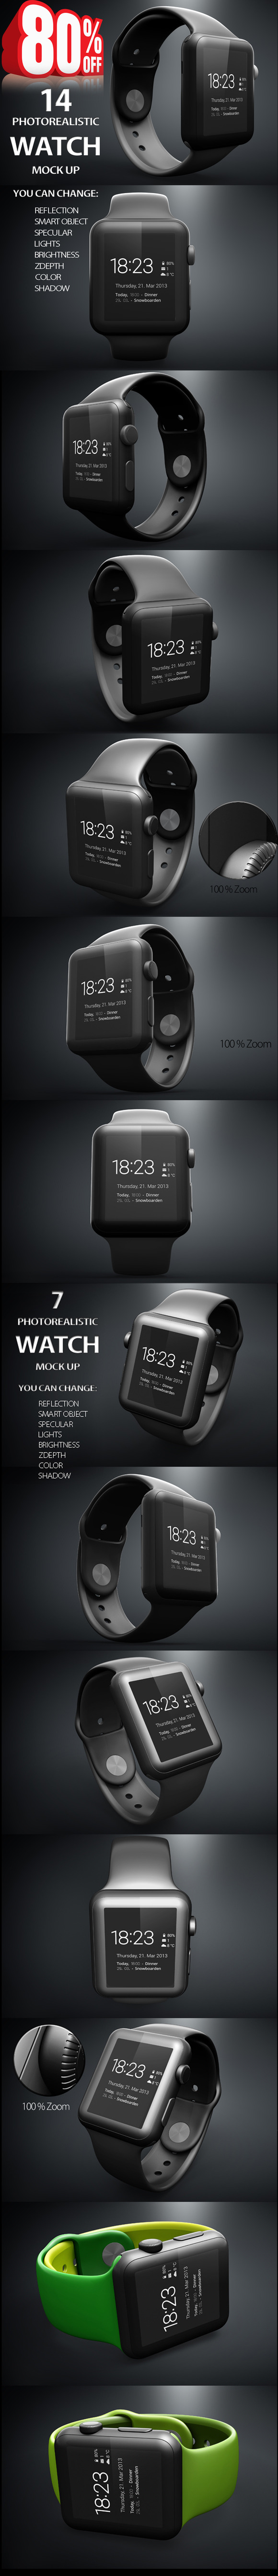 Bundle 14in1 Apple IWatch Mock Up